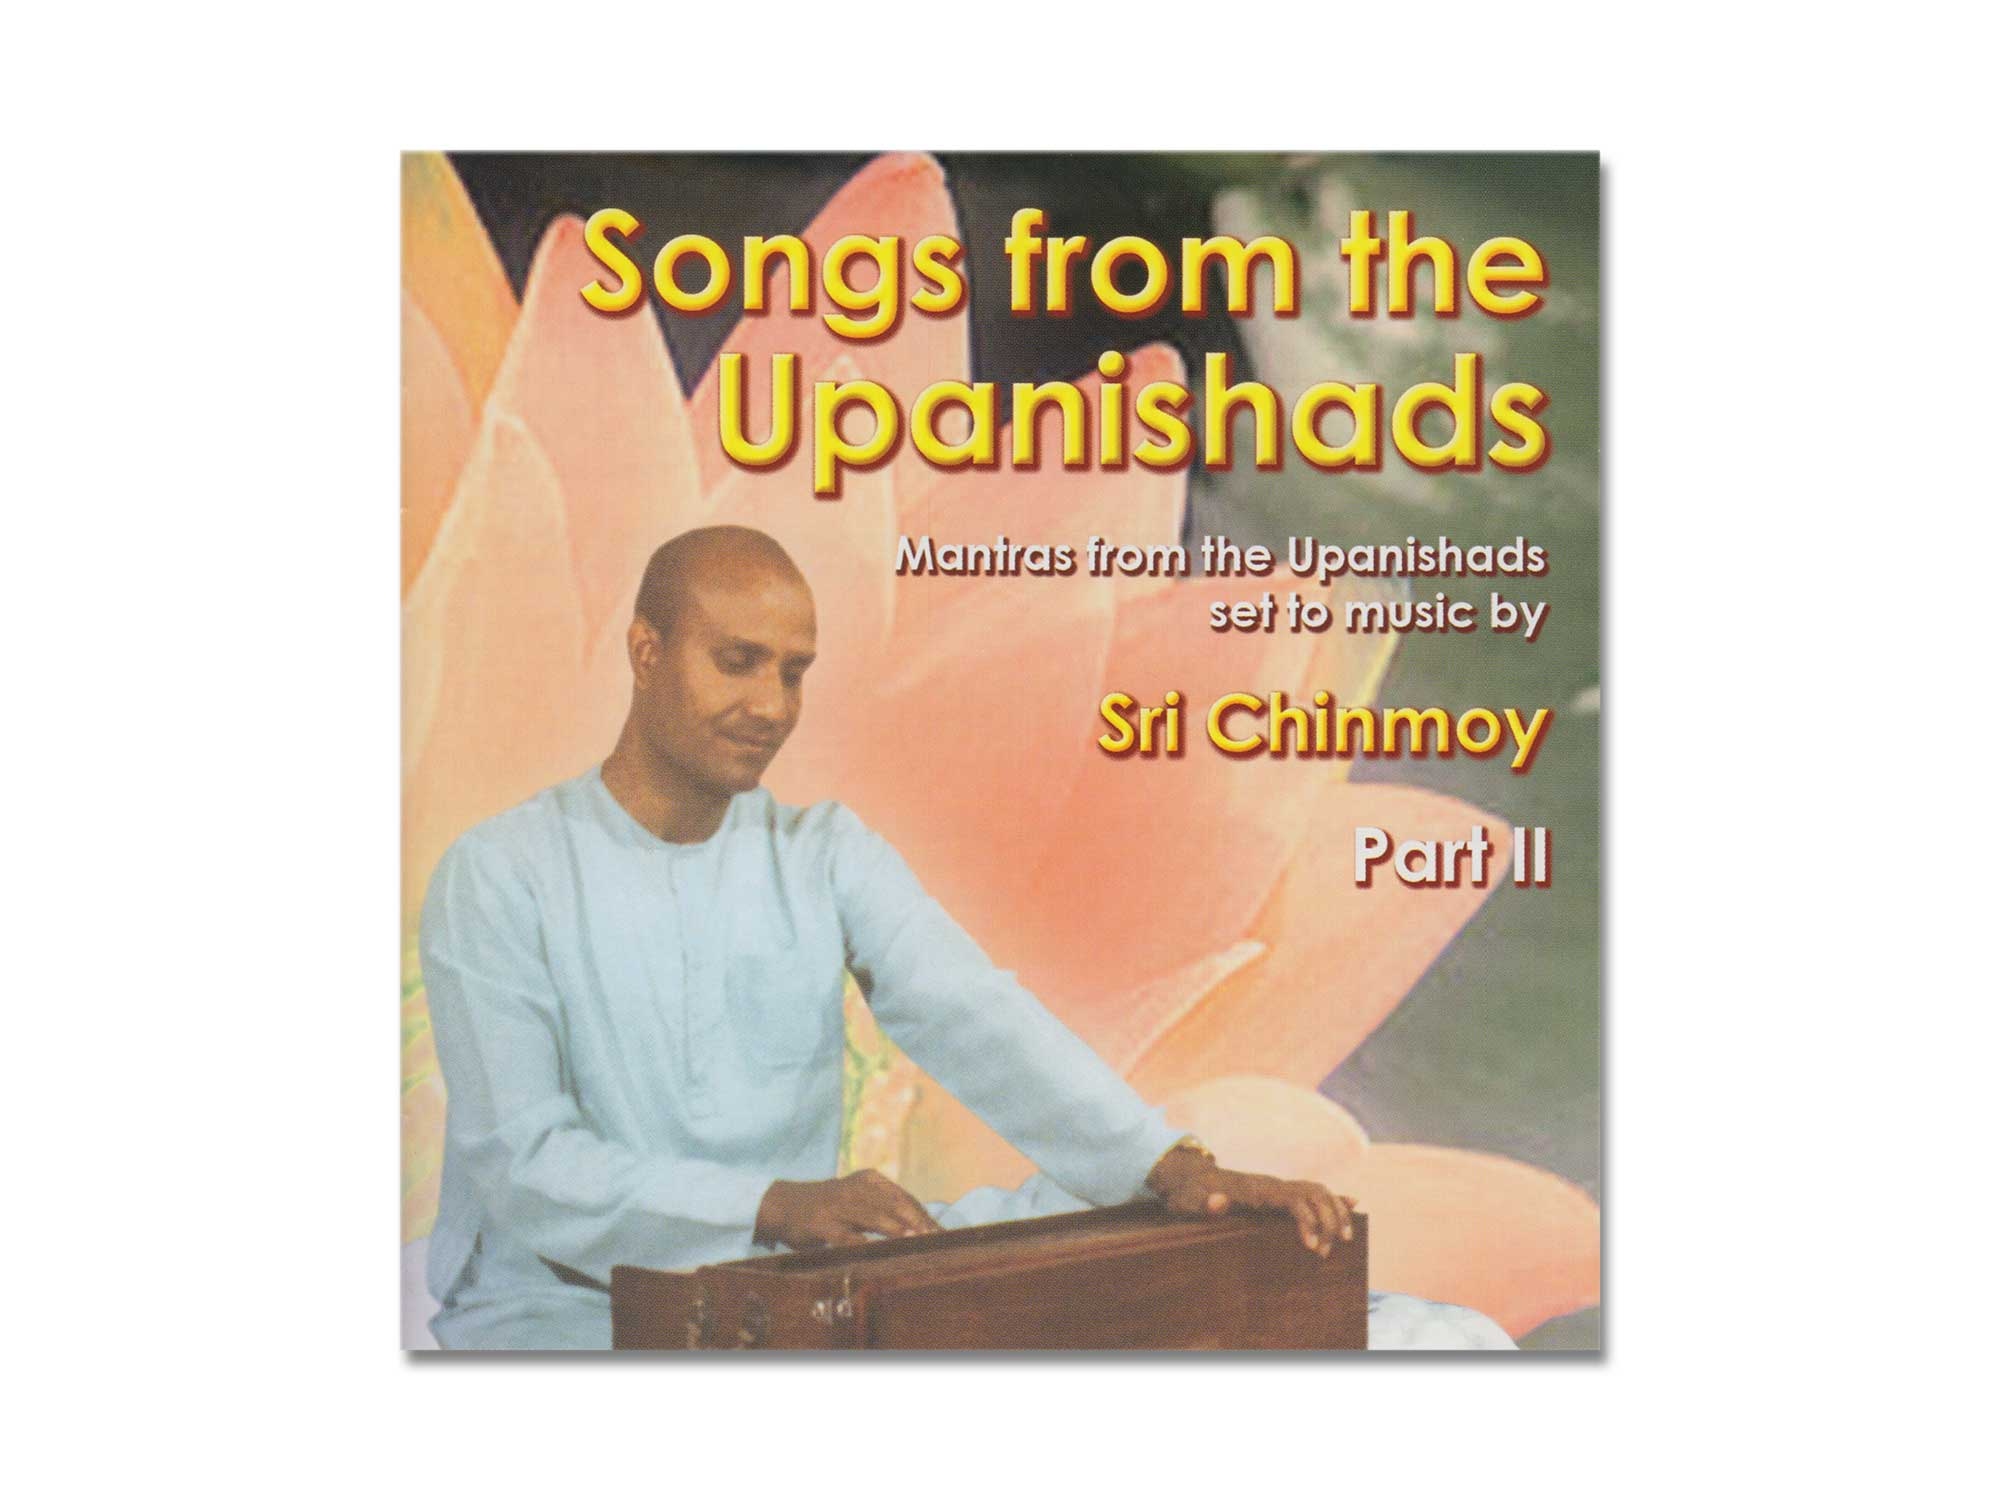 Songs From the Upanishads - Sri Chinmoy